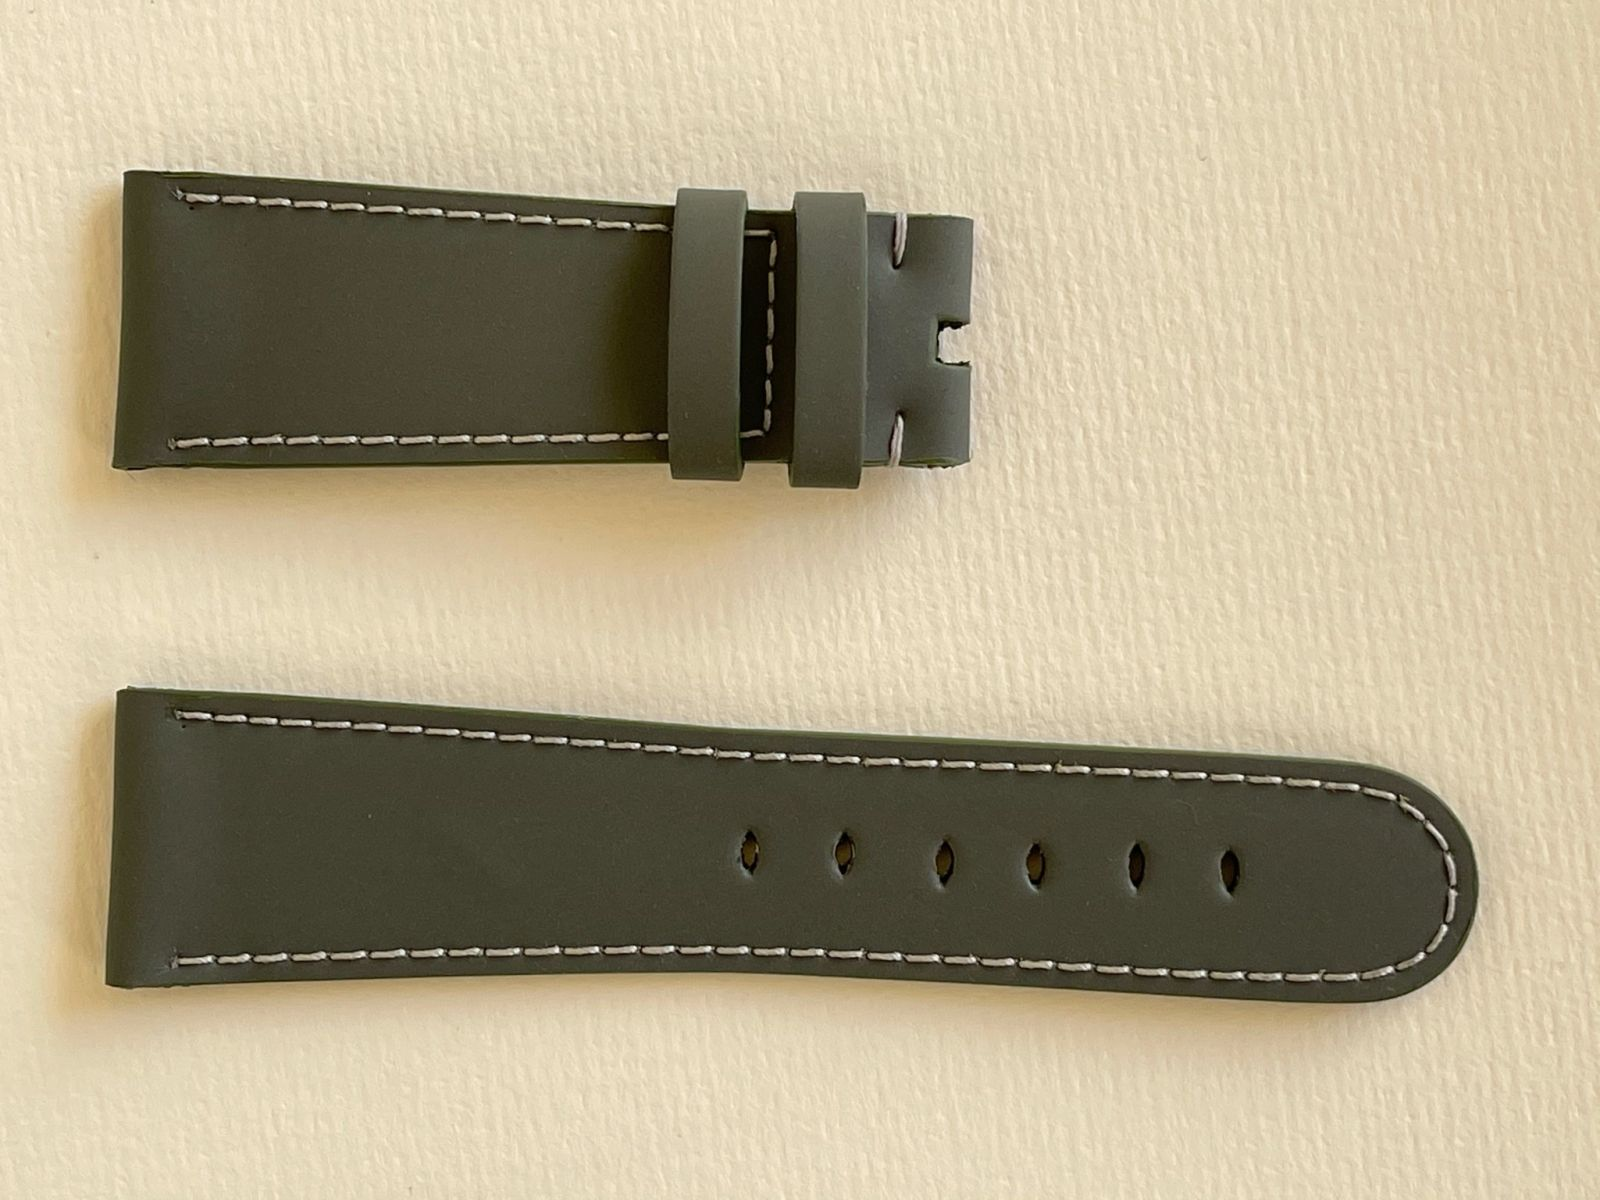 Milano Grey Recycled Rubber Strap 16mm, 18mm, 19mm, 20mm, 21mm, 22mm General style